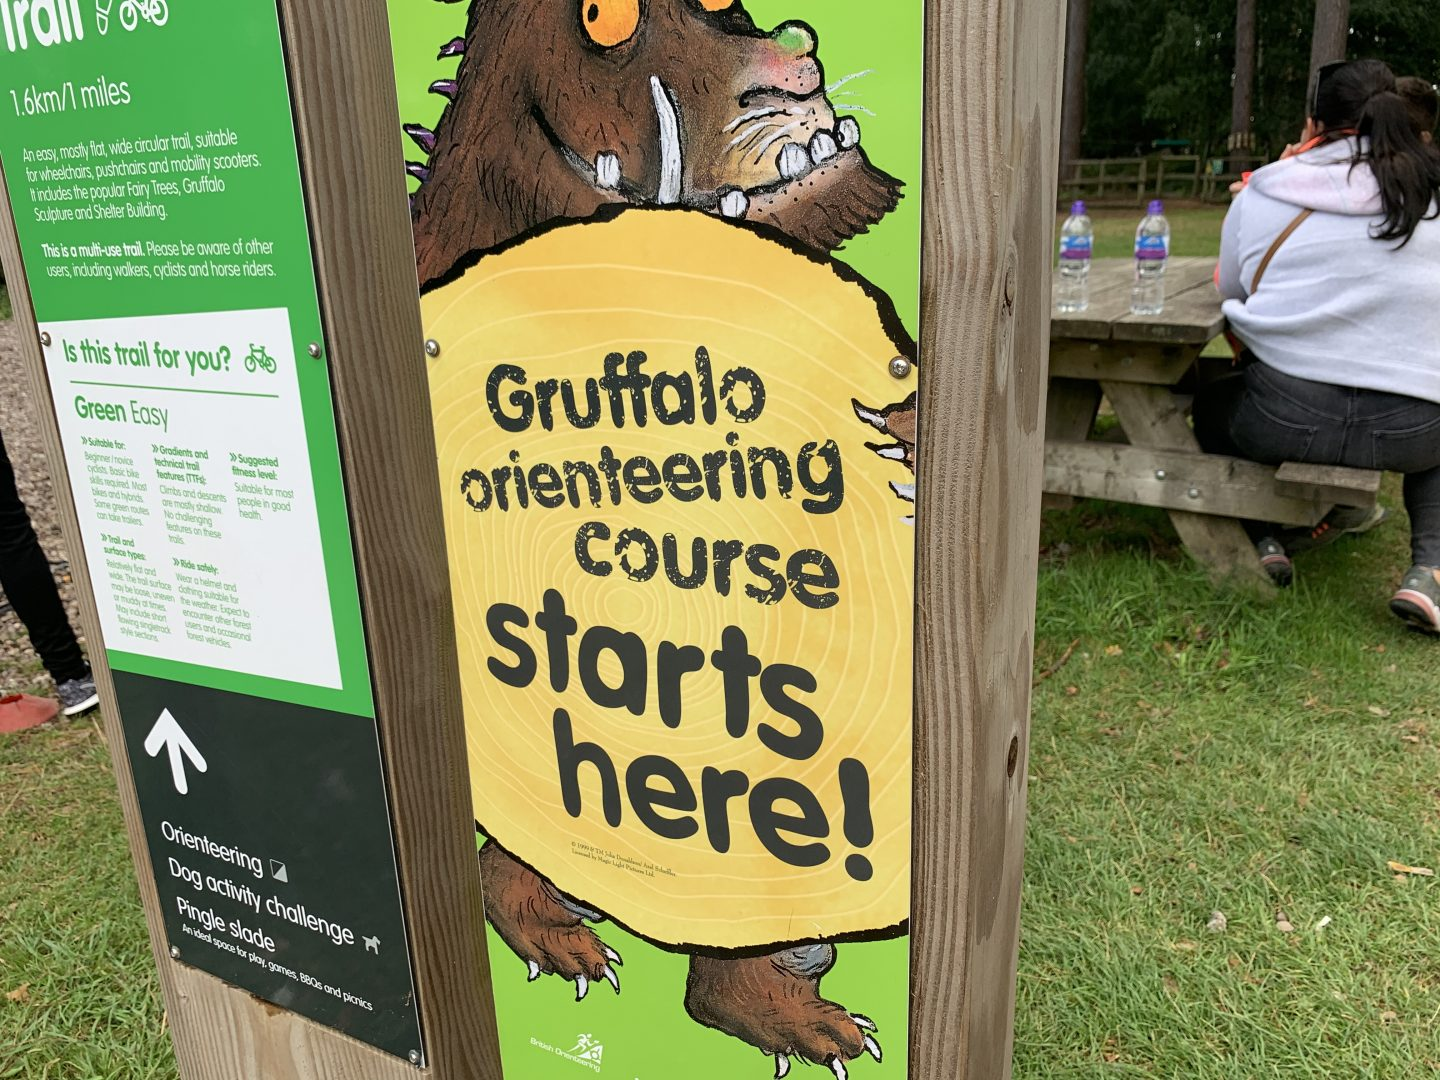 Gruffalo Trail Cannock Chase Sign Review